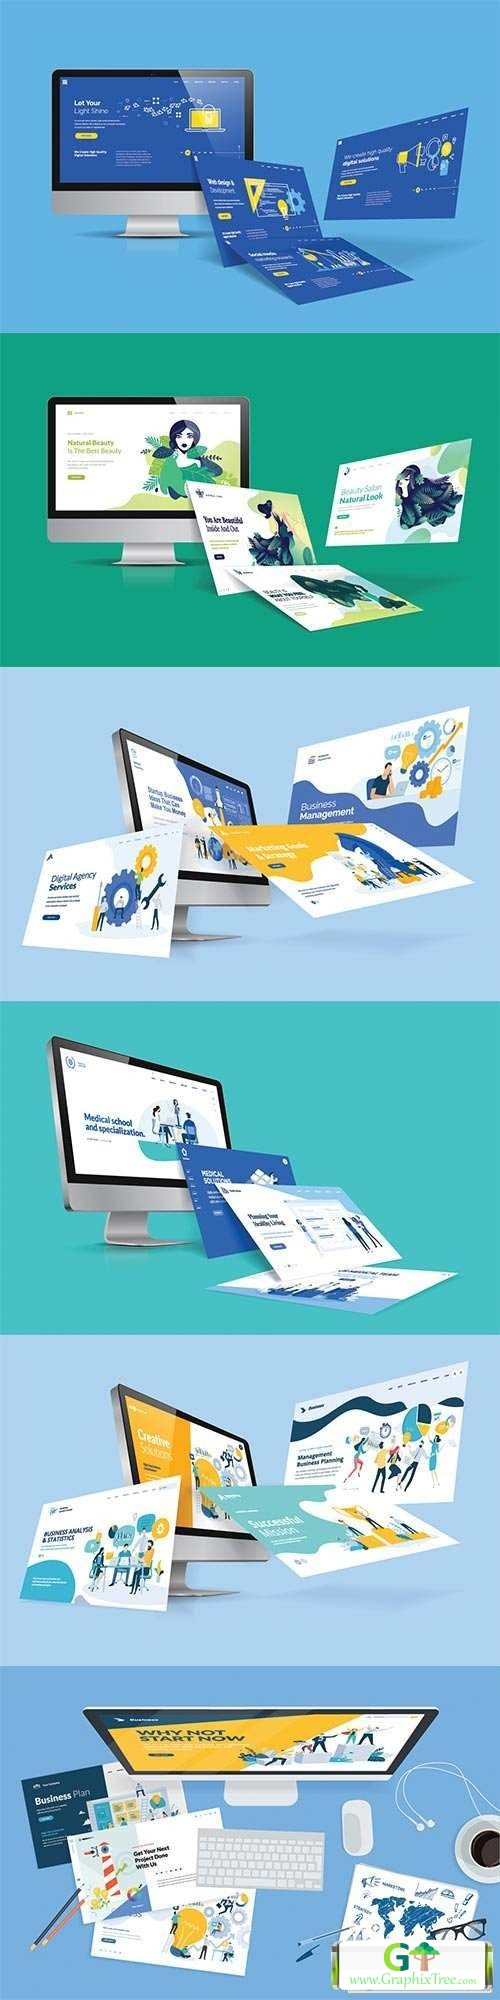 Creative workspace concept, top view, flat design vector